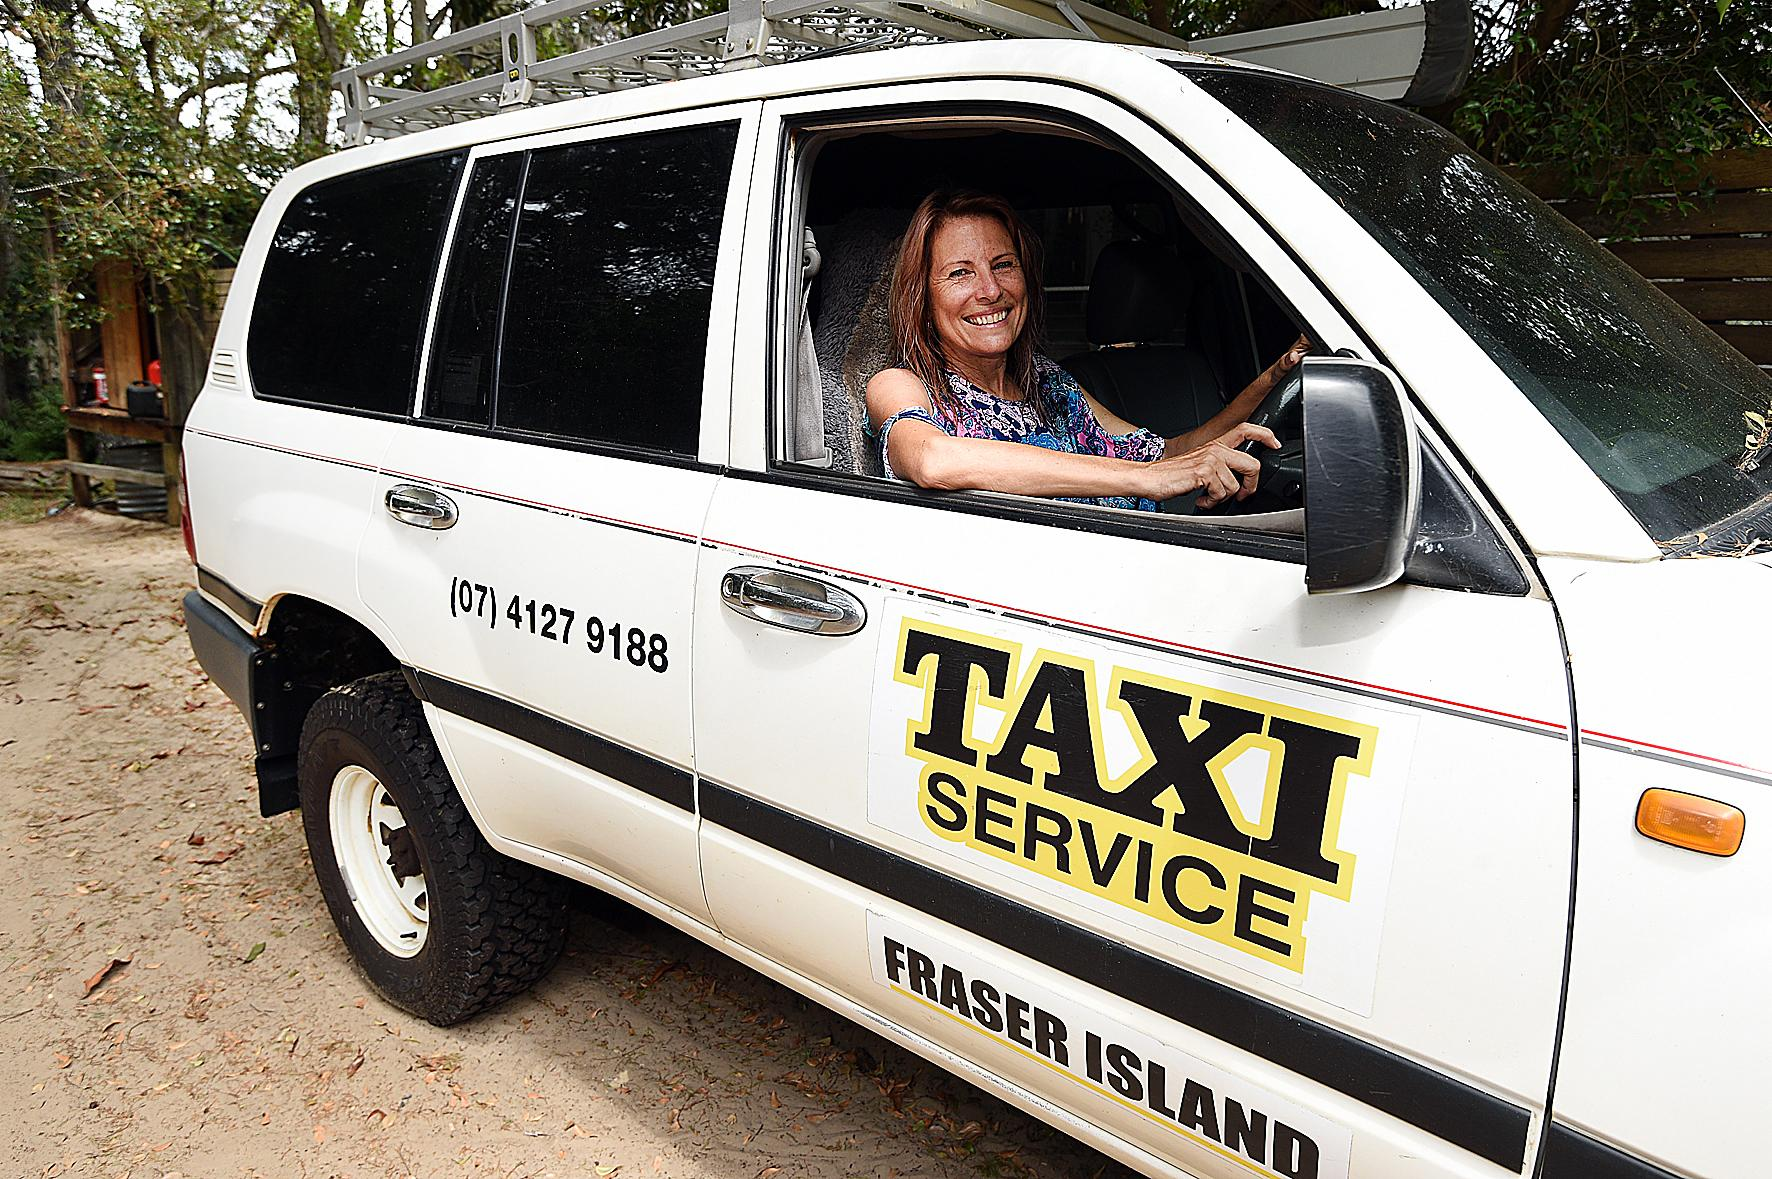 TOURIST TALE: Lisa Walker from Fraser Island Taxis spoke to a family member of the two people attacked by dingoes on Fraser Island.